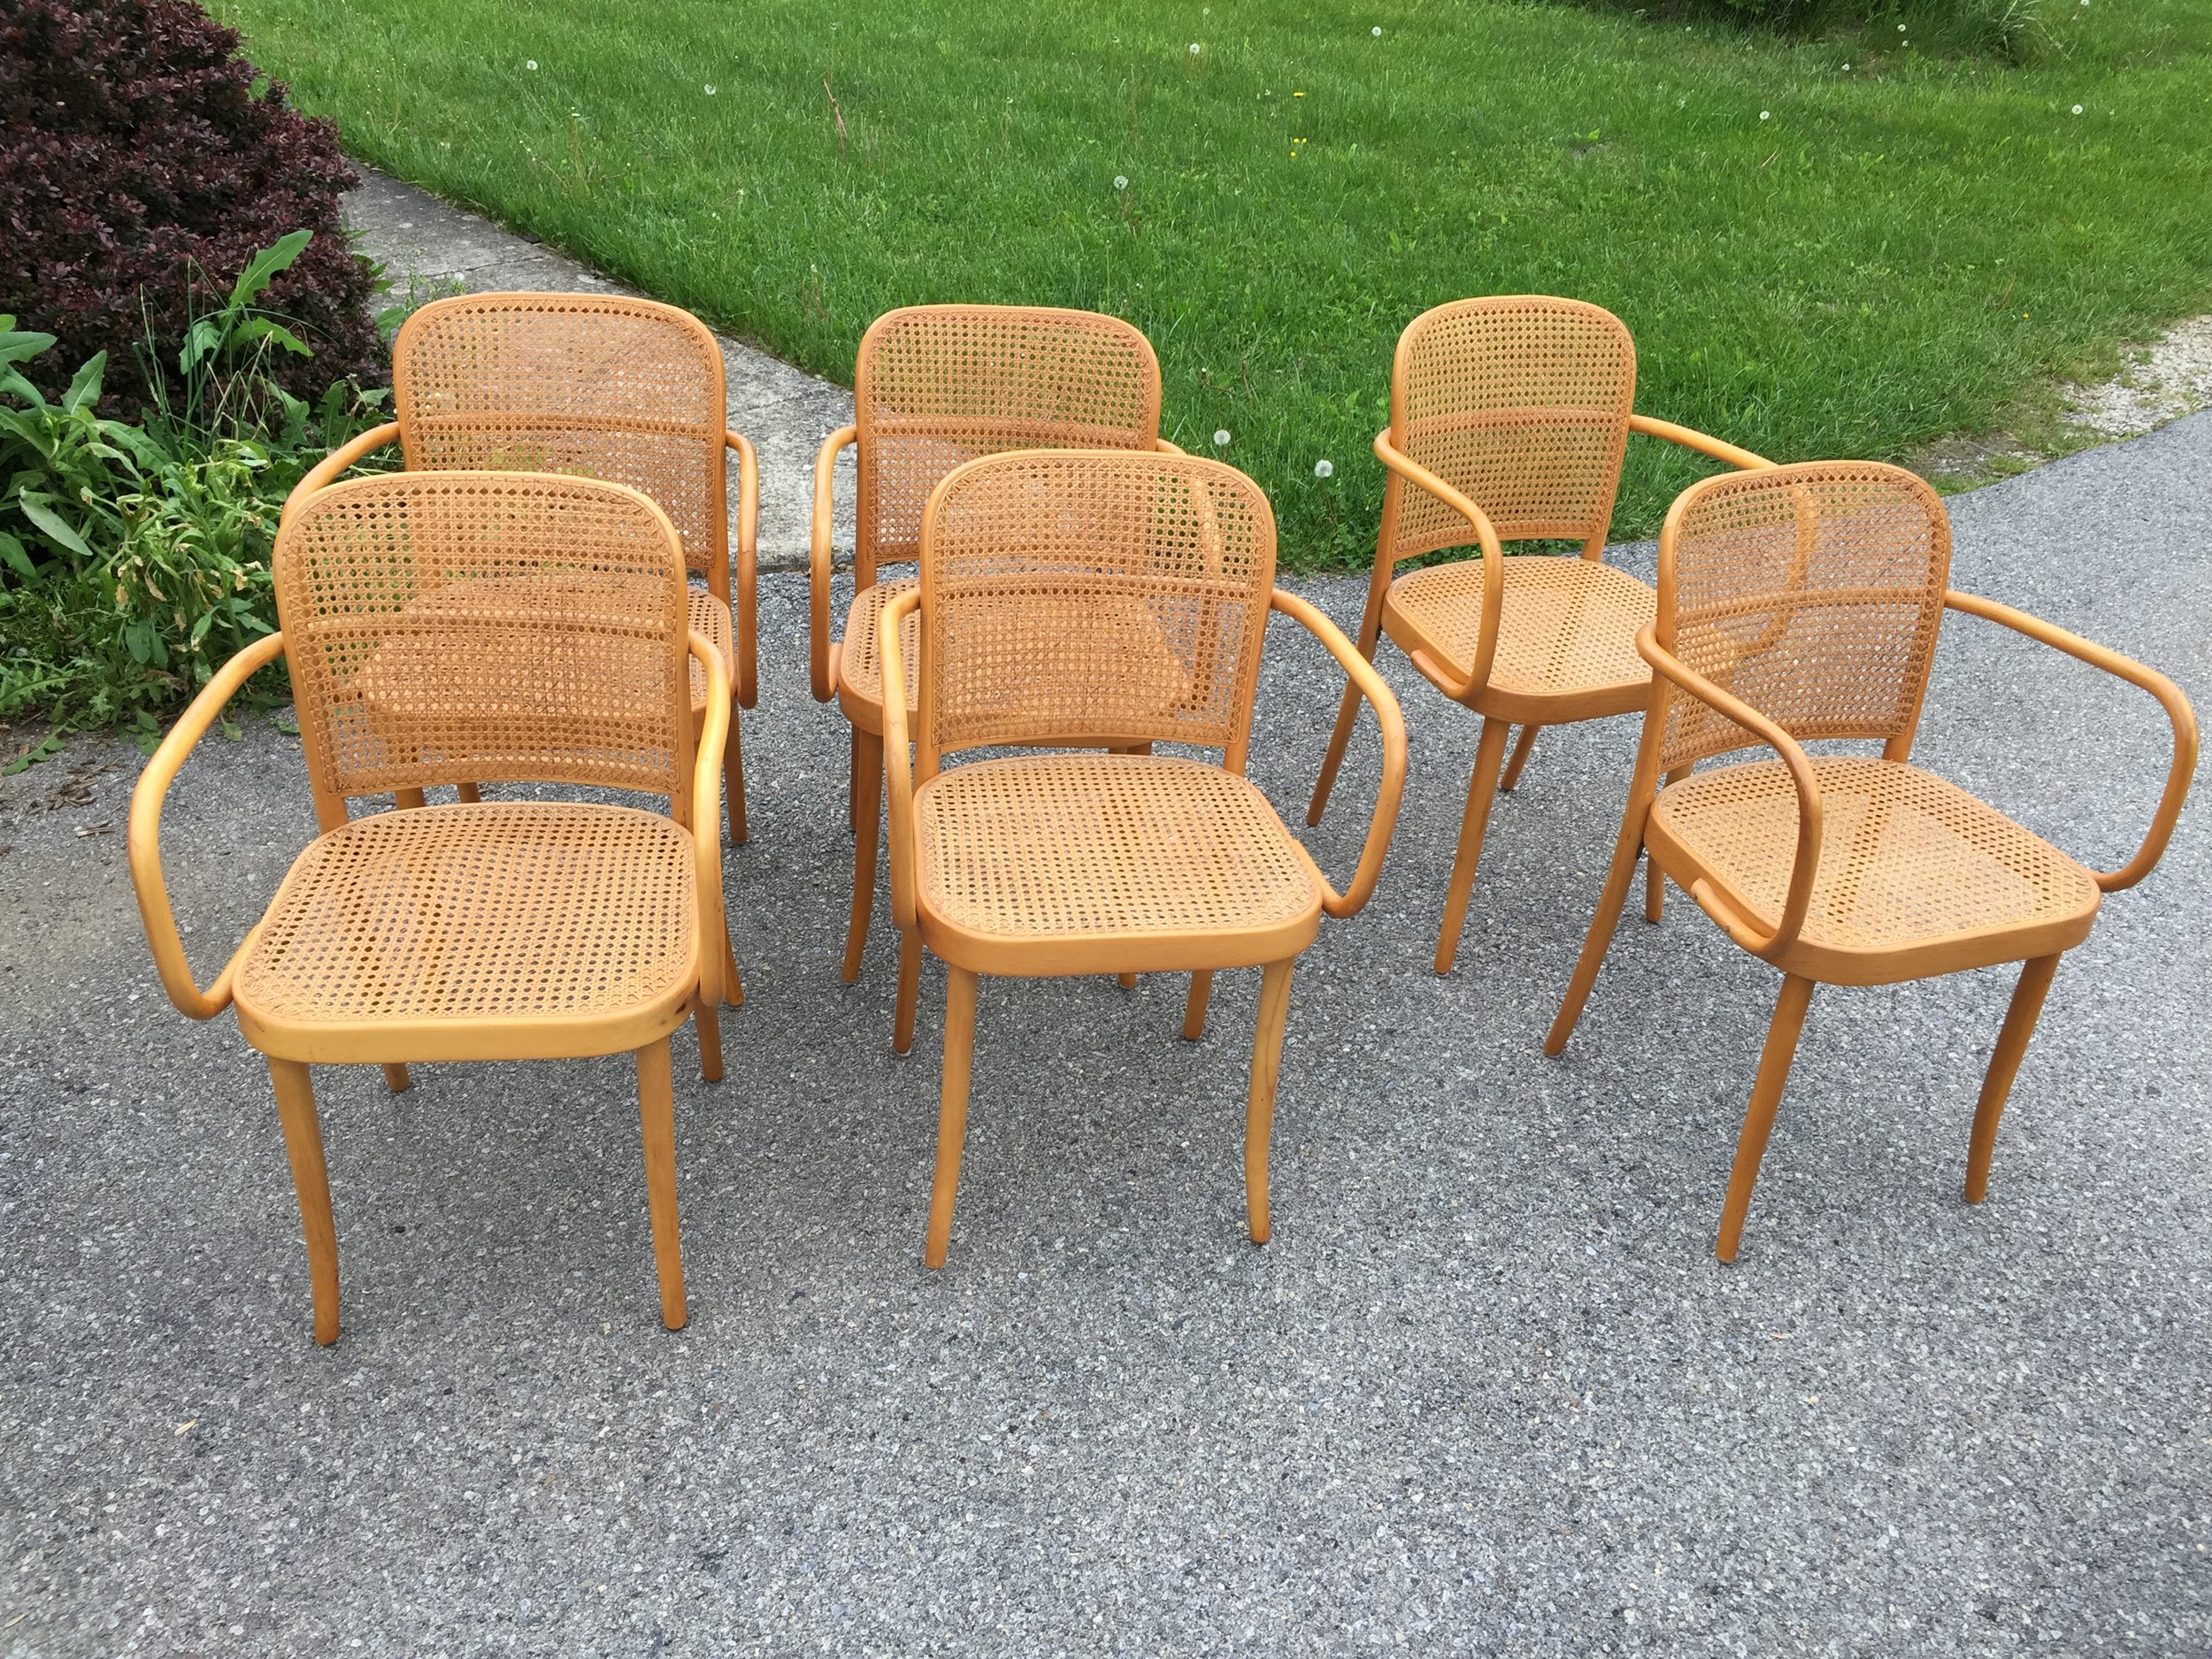 Blond beech Thonet 811 arm chairs.  designed by Josef Hoffmann/Josef Franck in 1930s.  This is an early set as noted by the lack of extra leg supports that were added to later models.  Beautiful hand caned seats and backs and in fantastic condition.  I will be glueing up a few wobbly front legs (reason additional supports were added) you may periodically have to repeat this as they loosen up but an ounce of prevention will keep them stellar.  They are super lightweight, simple, yet gorgeous in design. Made in Thonet's Czechoslovakian plant, imported by US IMPORTER Stendig and stamped, stickered accordingly. You will find Thonet's bentwood pieces in museums all over the world as Michael Thonet devised and perfected the stream bending process.  Here's a great chance to obtain a large matched set of these great artifacts!